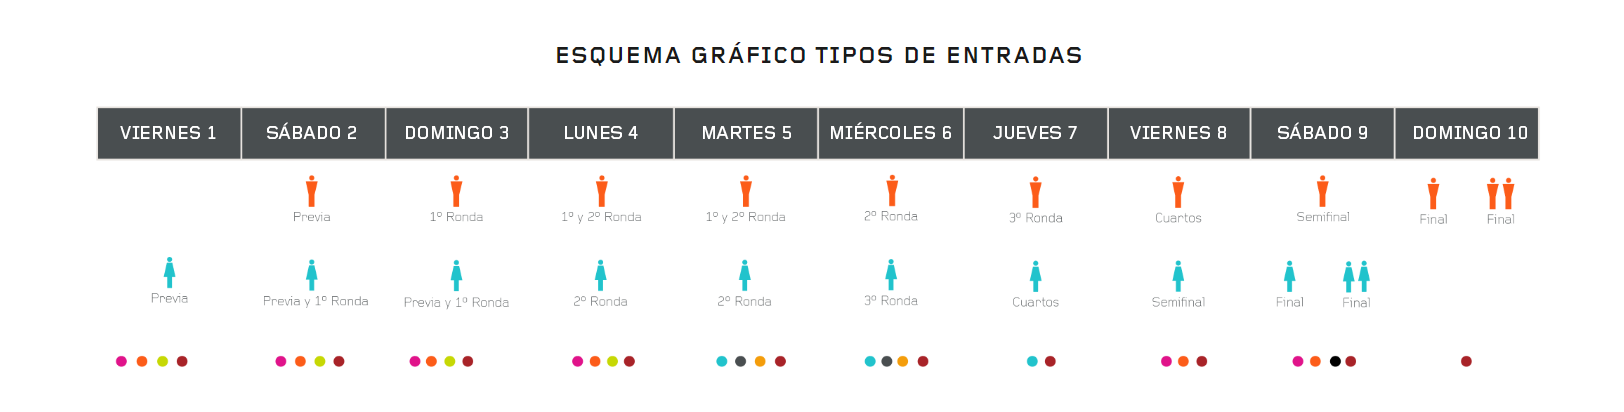 Atp Calendario 2020.Tipos De Entradas Mutua Madrid Open 2019